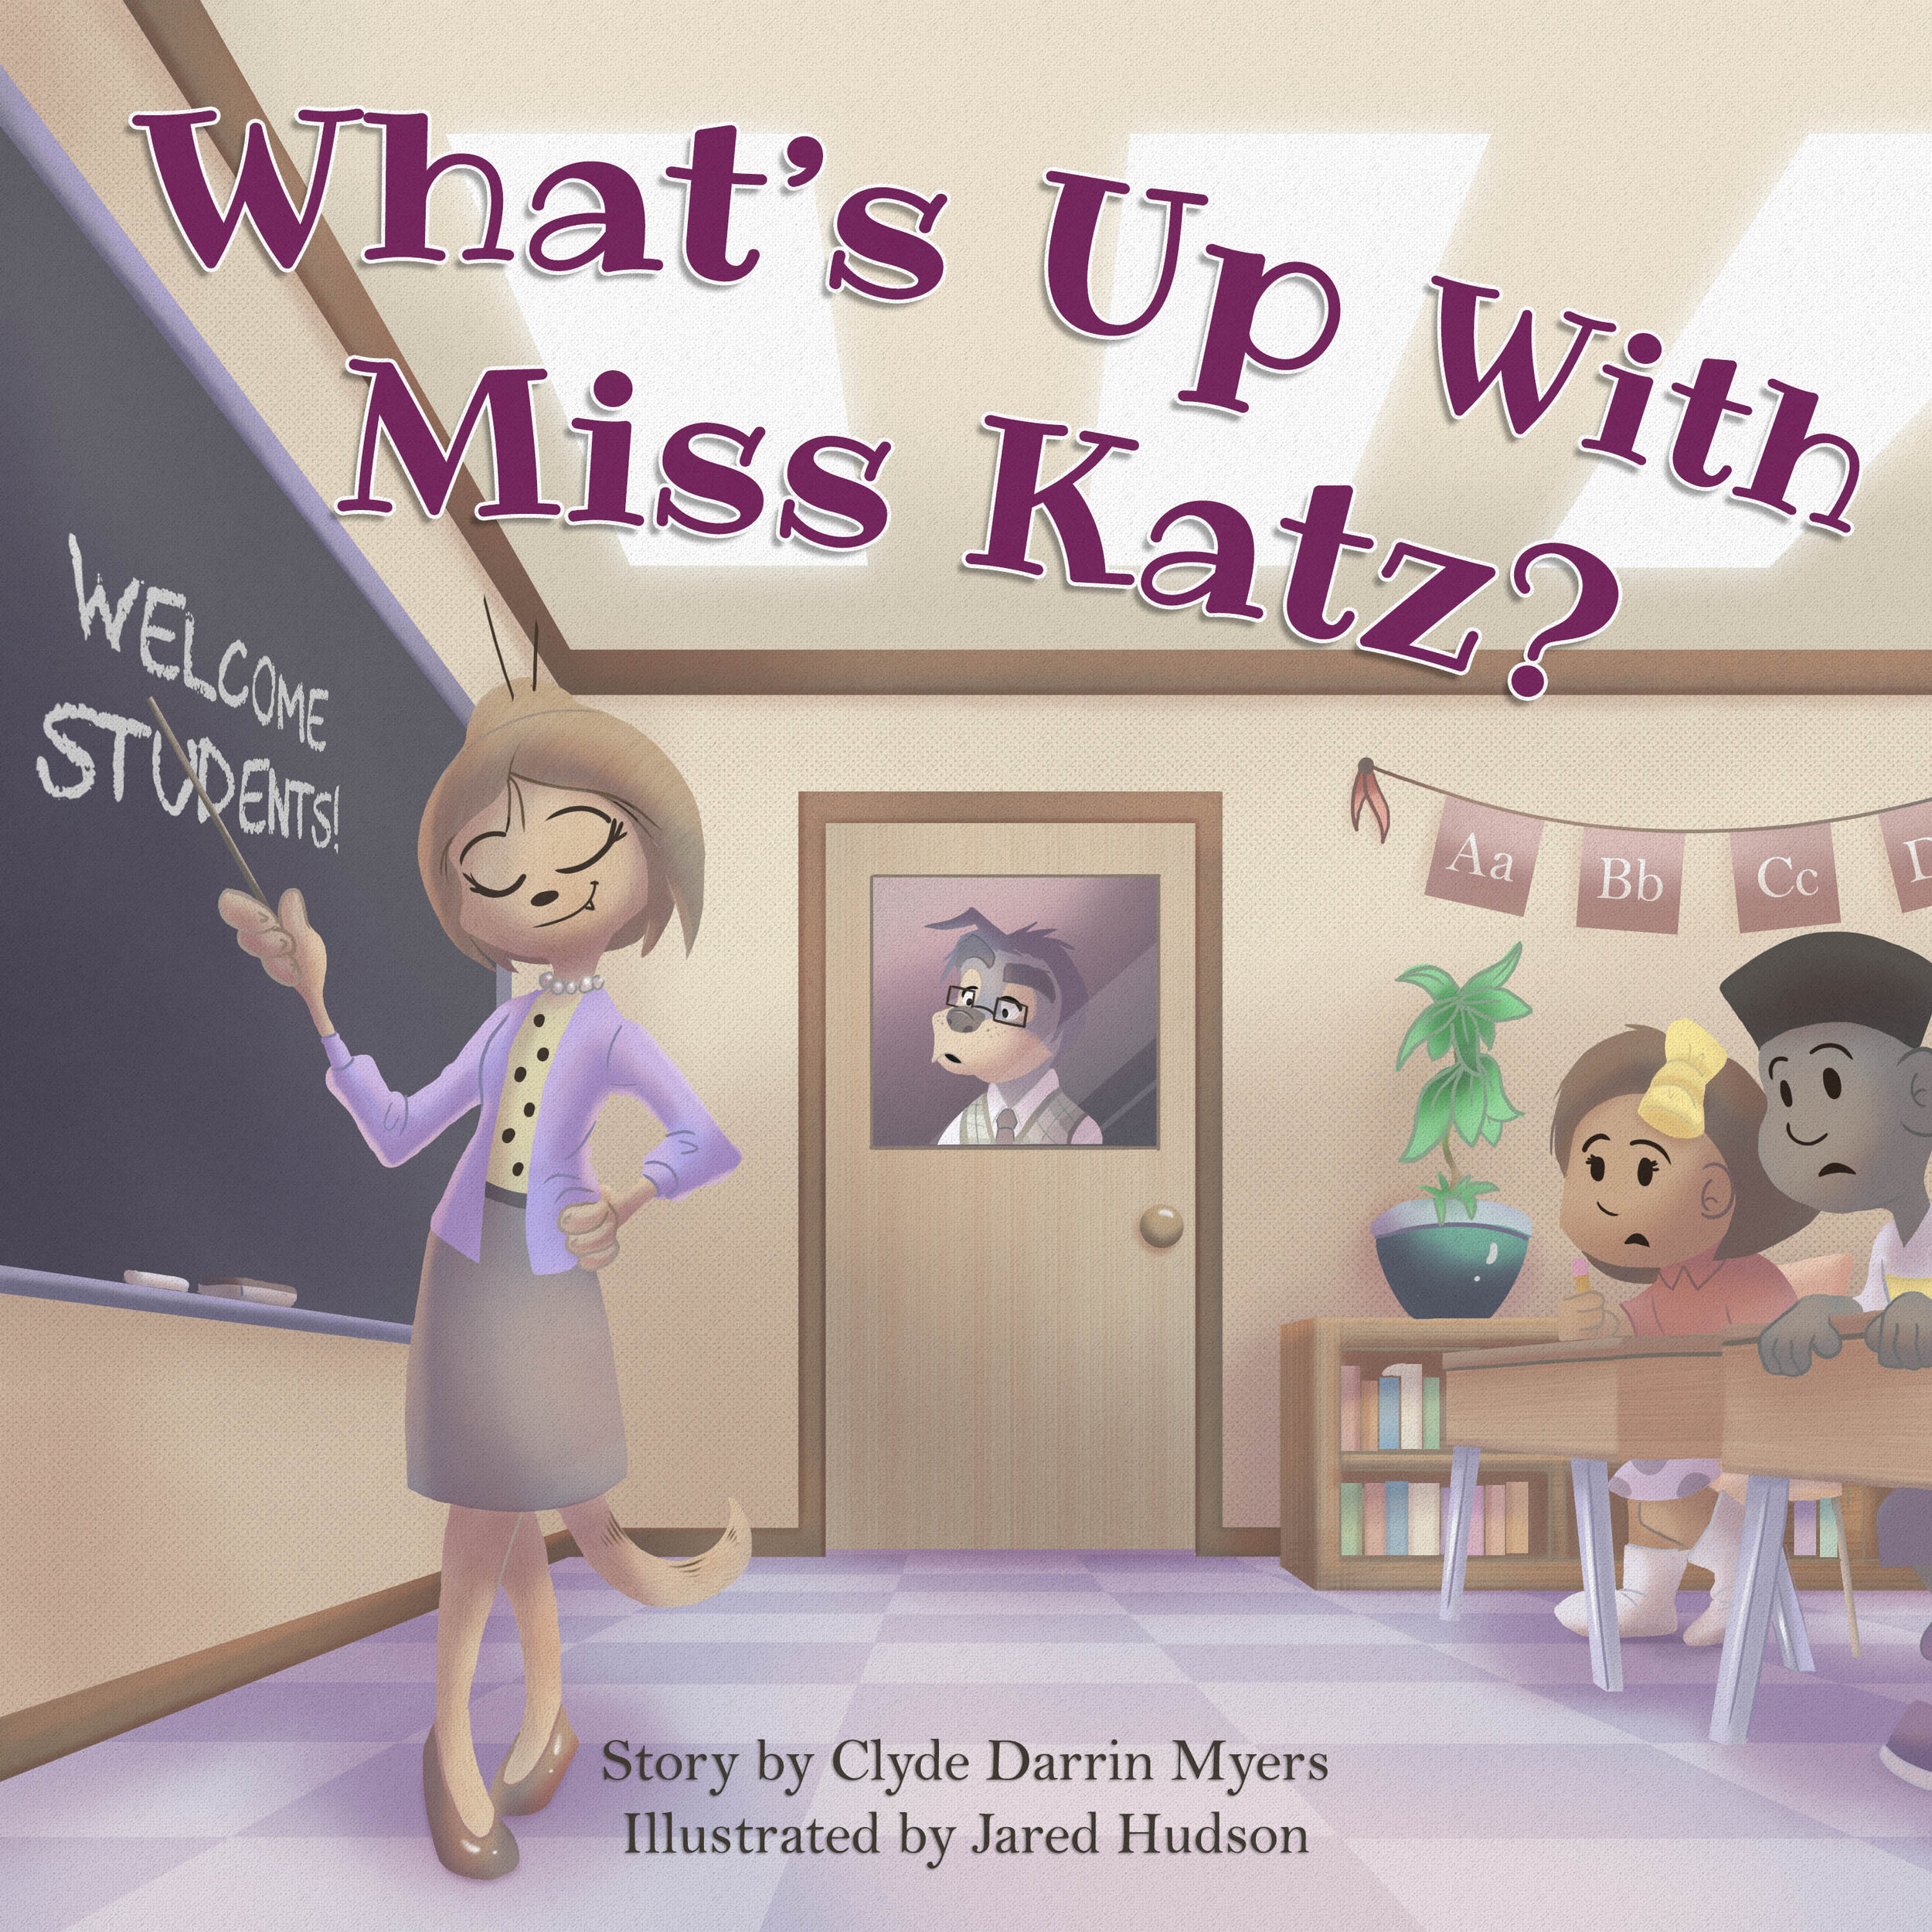 What's Up With Miss Katz? - Illustrated by the brilliant Jared Hudson:https://jaredhudson.com/